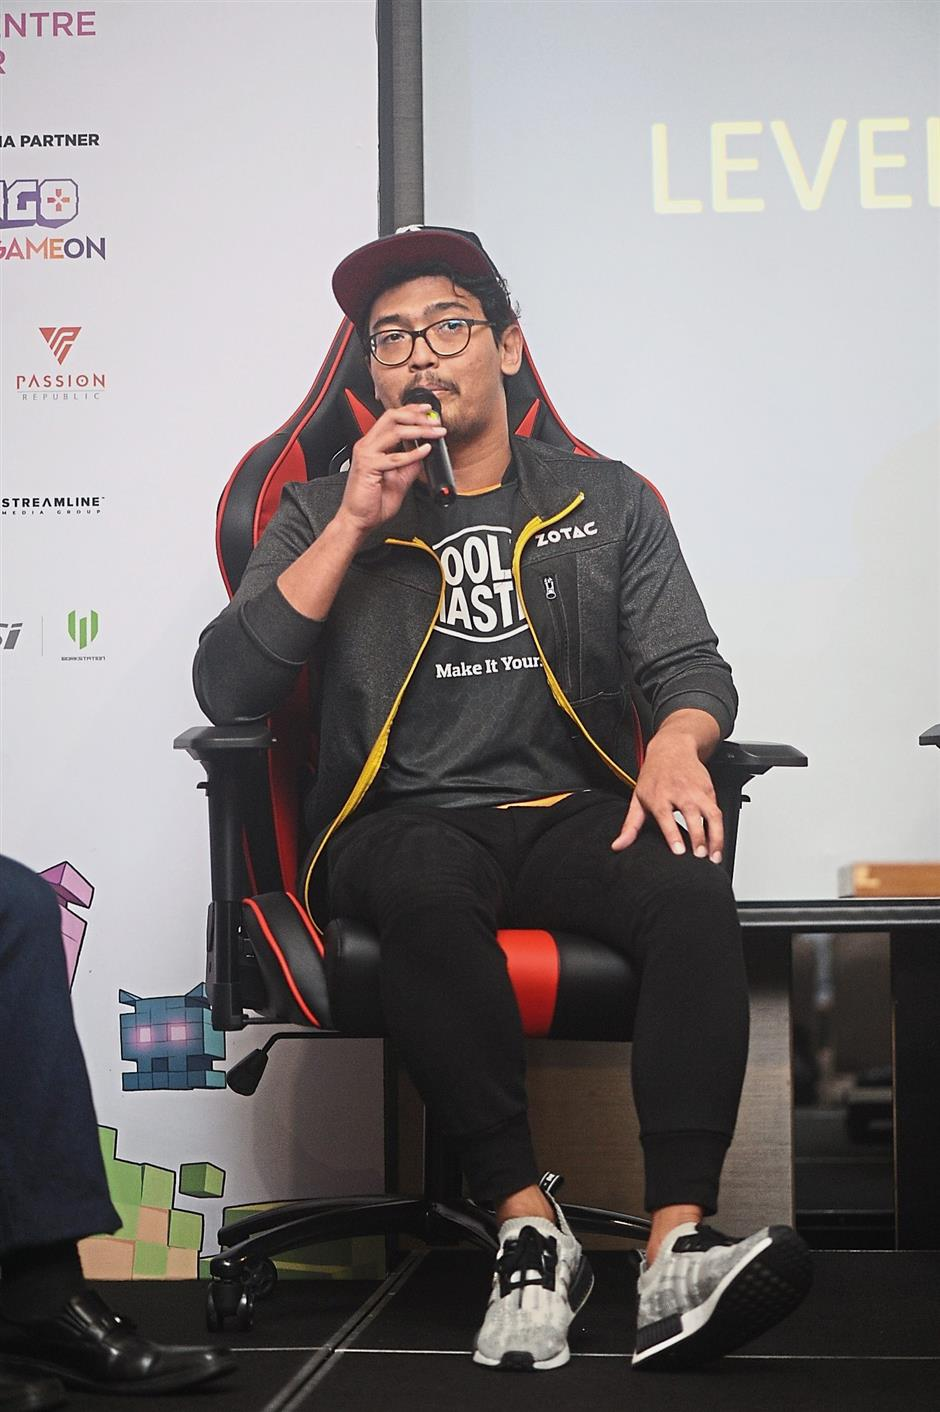 Afiq says streaming ensures a steadier income than winning eSports tournaments. — LevelUpKL 2018